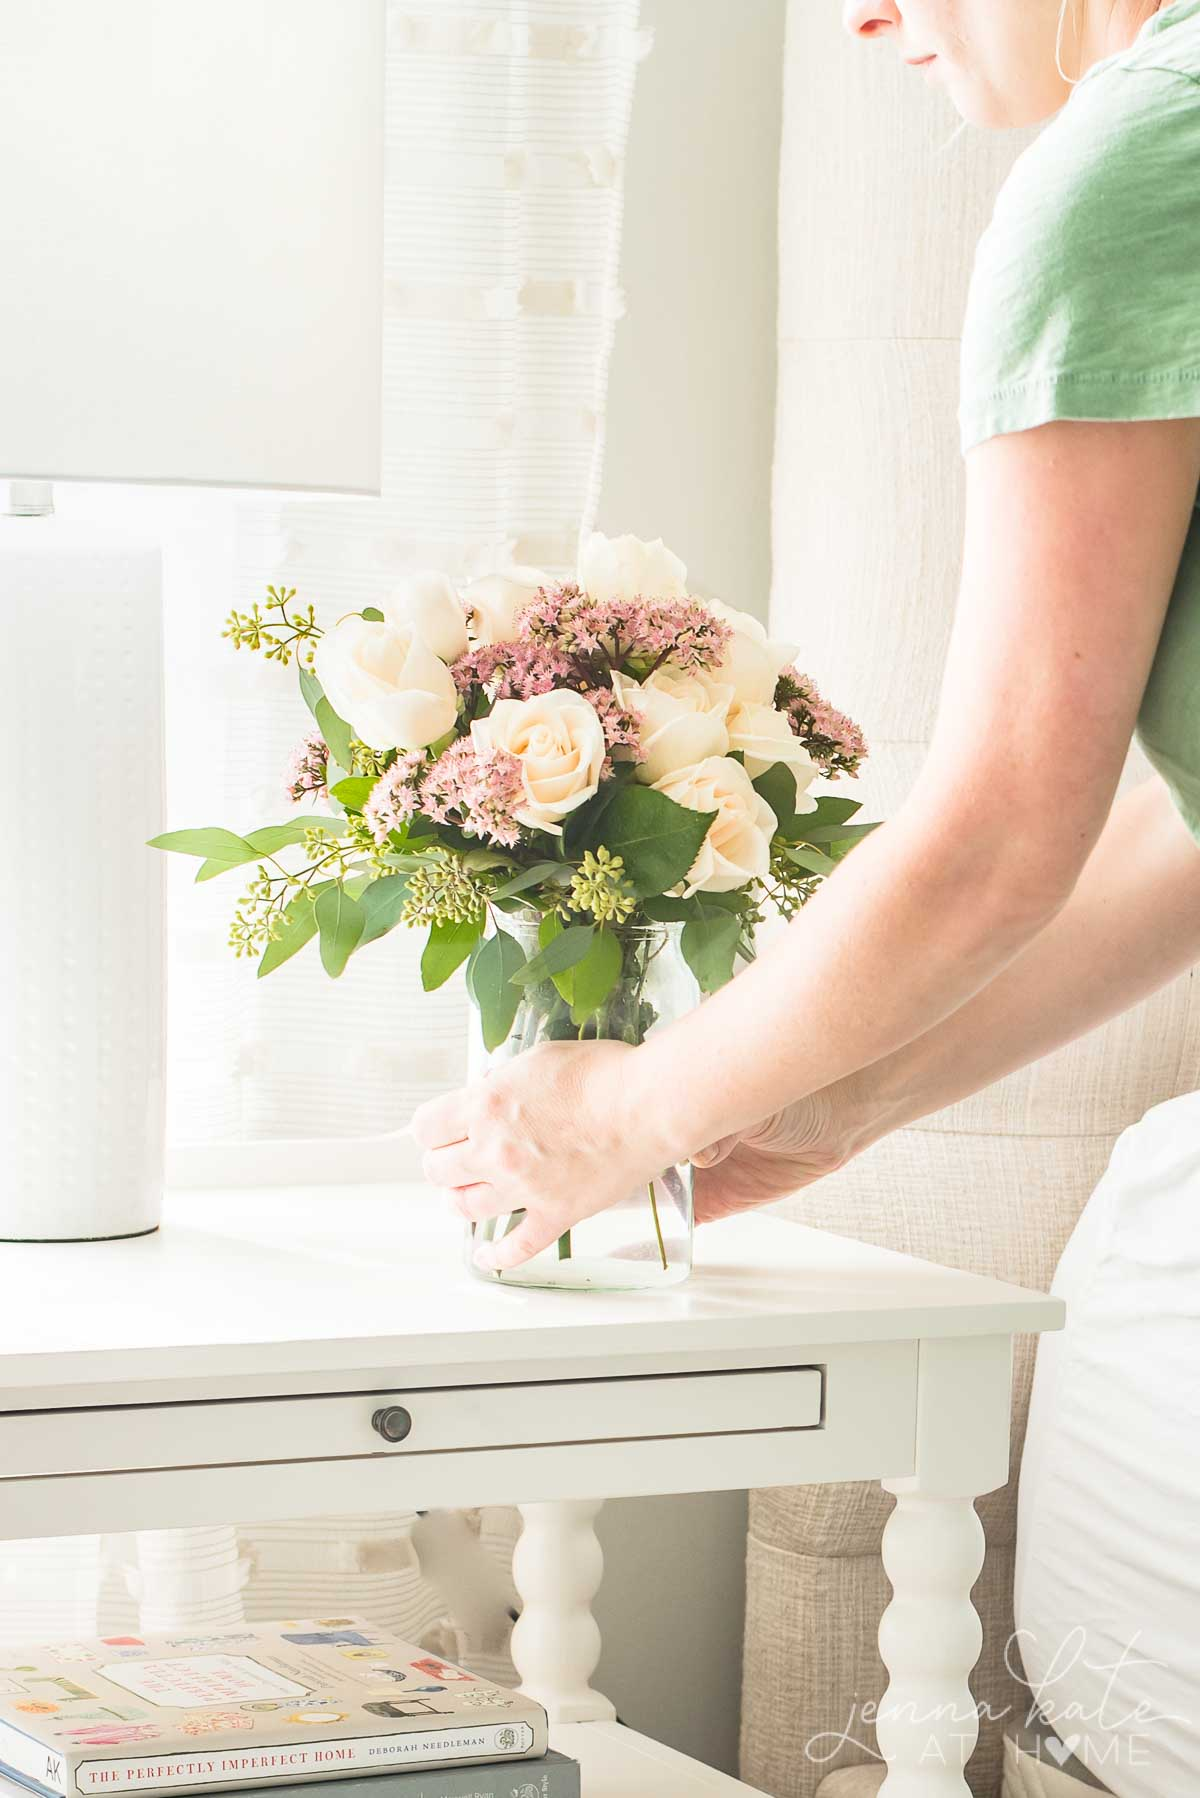 bedroom nightstand with woman placing vase of summery flowers on it